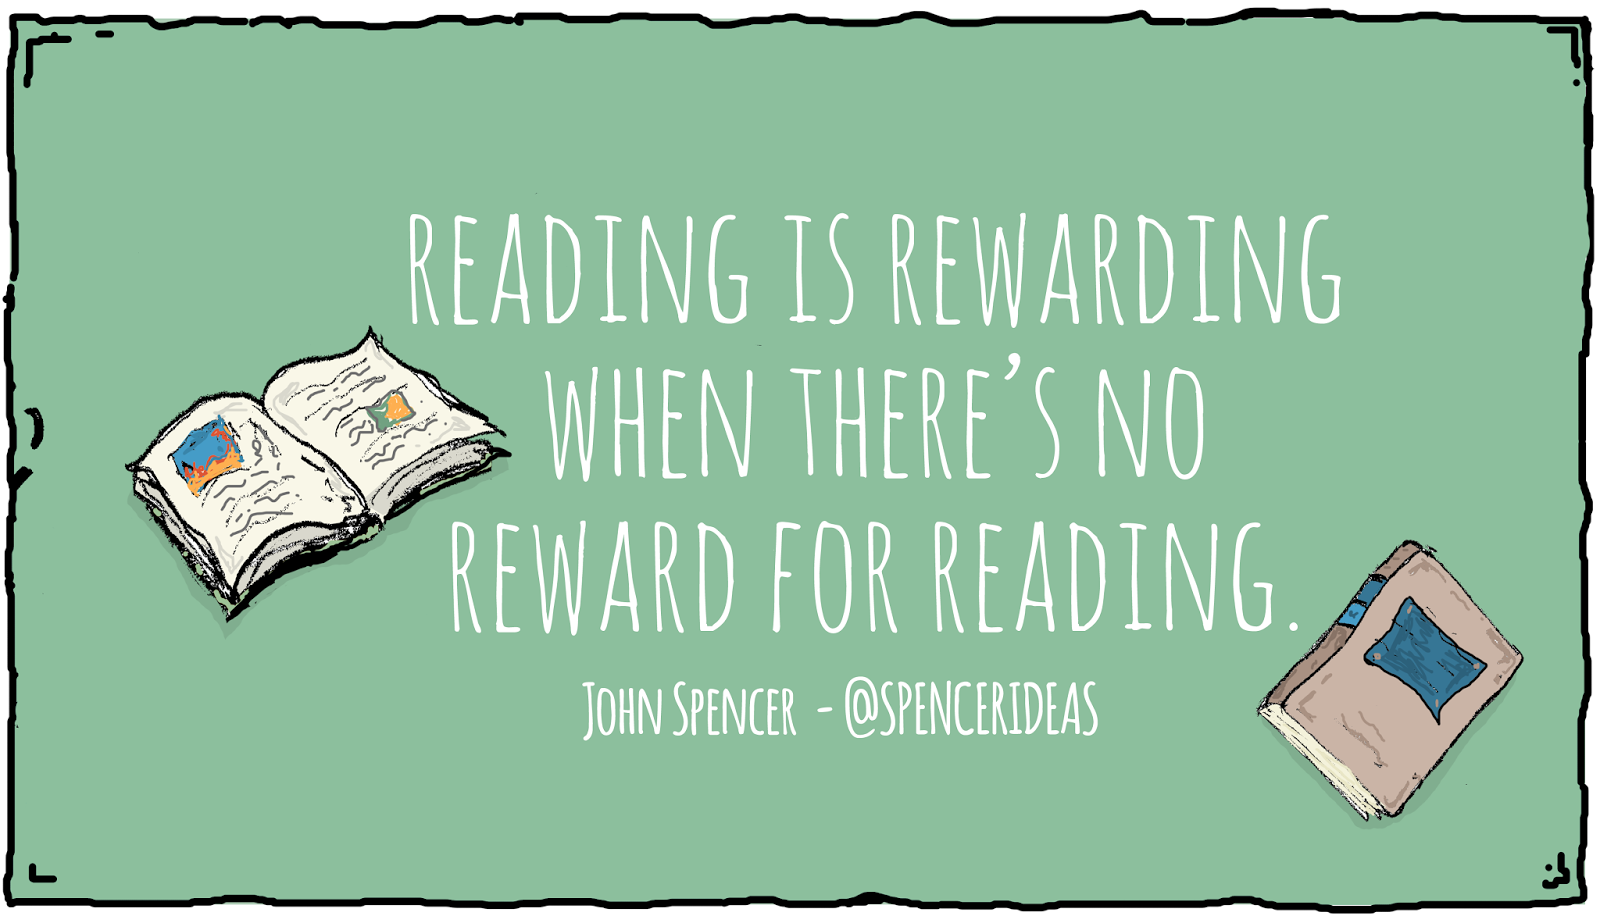 Reading is Rewarding When There's No Reward for Reading